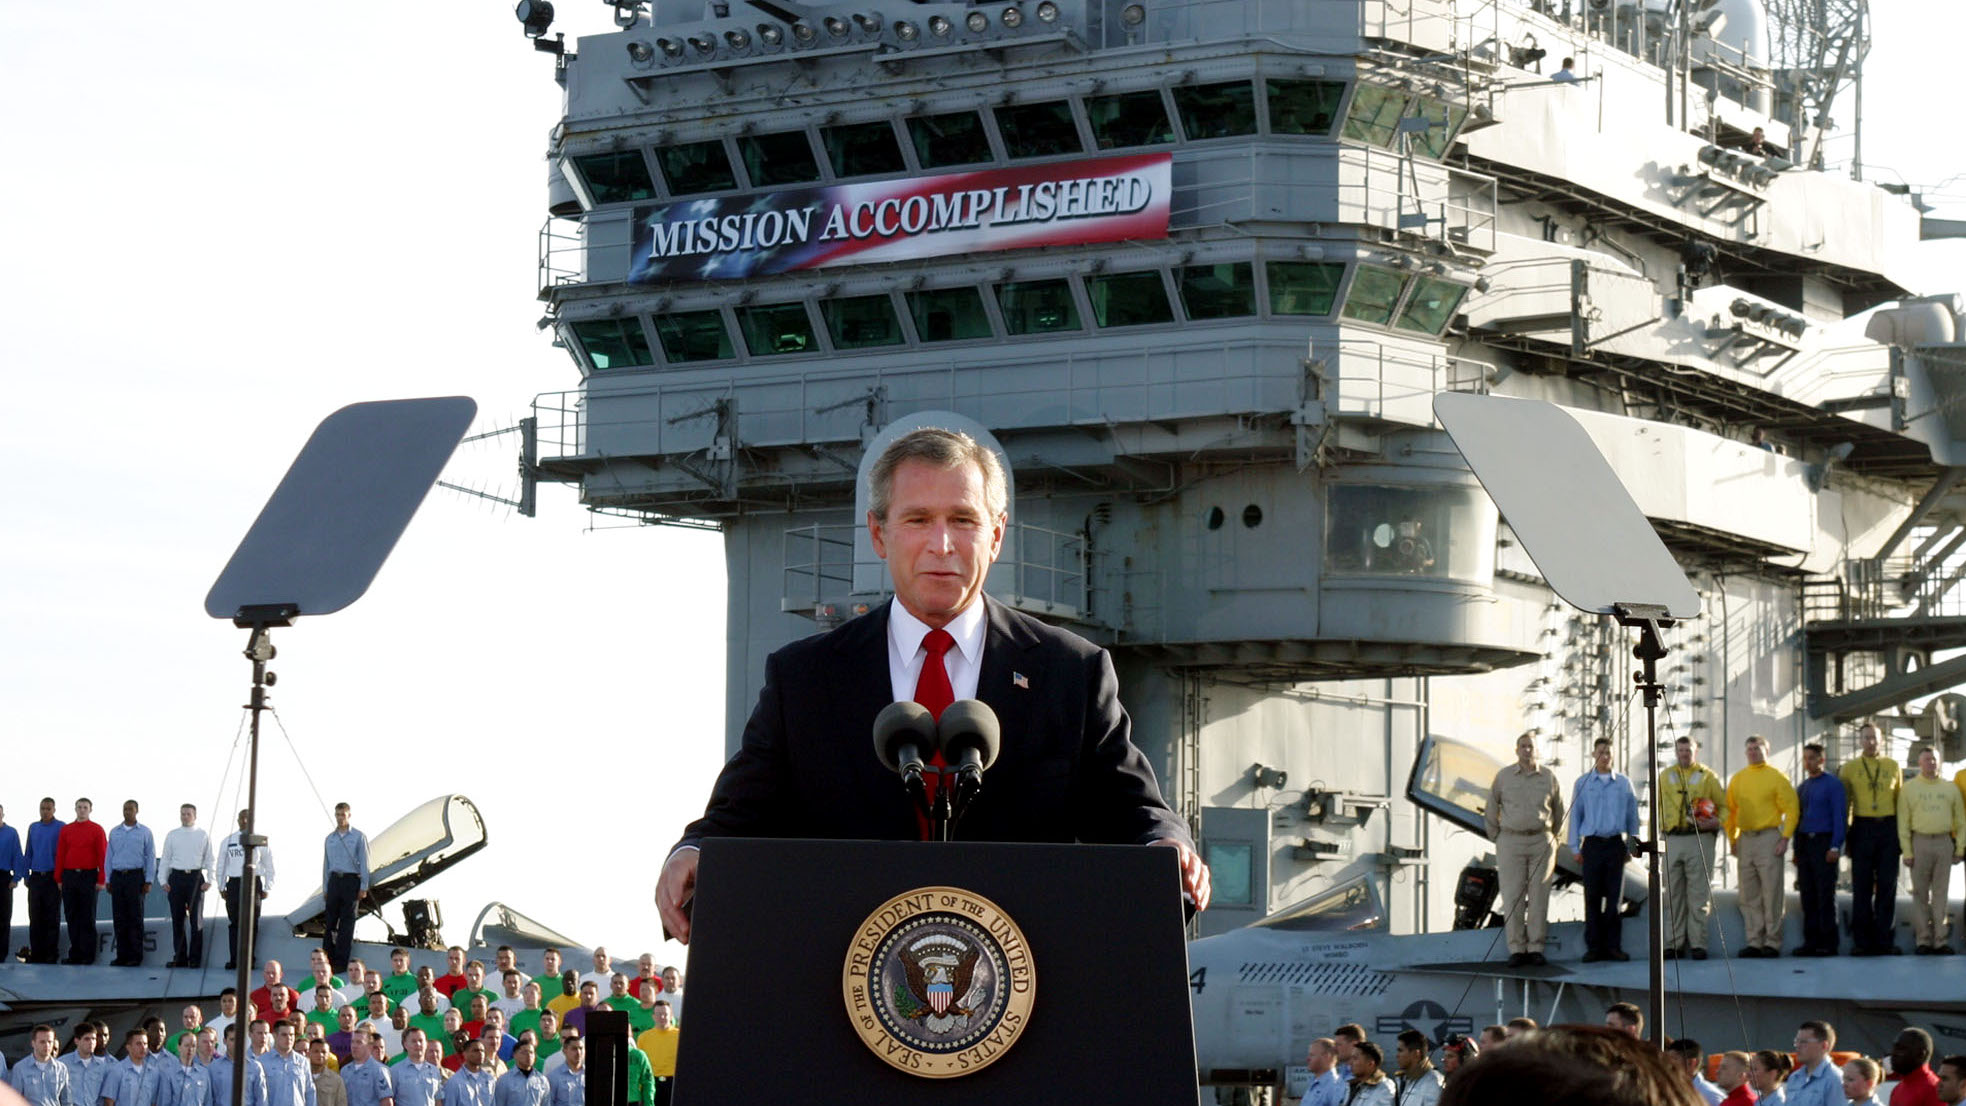 "** FILE ** President Bush declares the end of major combat in Iraq as he speaks aboard the aircraft carrier USS Abraham Lincoln off the California coast, in this May 1, 2003 file photo. Democratic congressional leaders on Tuesday, May 1, 2007 sent Iraq legislation setting timetables for U.S. troop withdrawals to President George W. Bush and a certain veto. On the fourth anniversary of the president's ""Mission Accomplished"" speech, Senate Majority Democratic Leader Harry Reid said that Bush ""has put our troops in the middle of a civil war. A change of course is needed."""